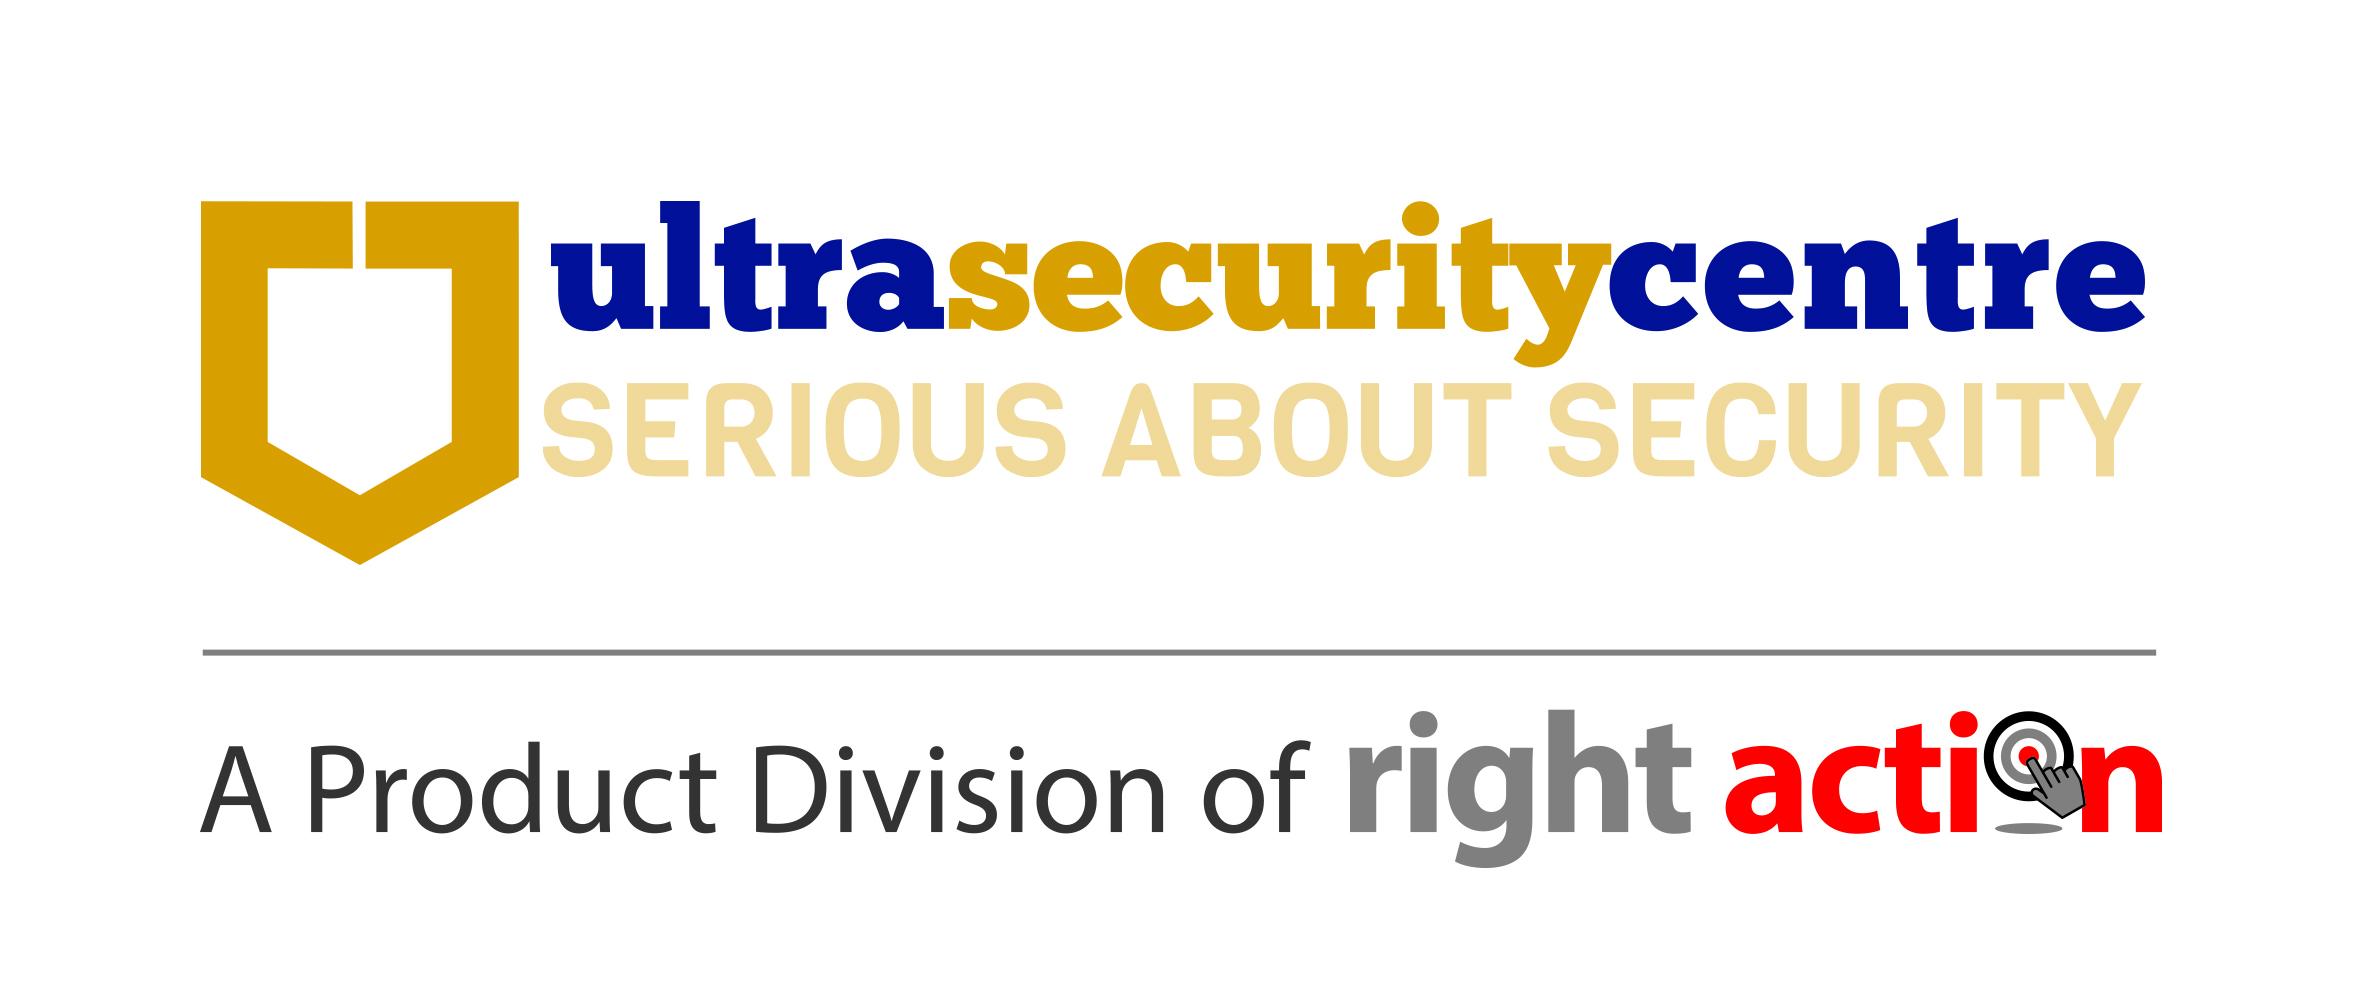 Ultra Security Centre